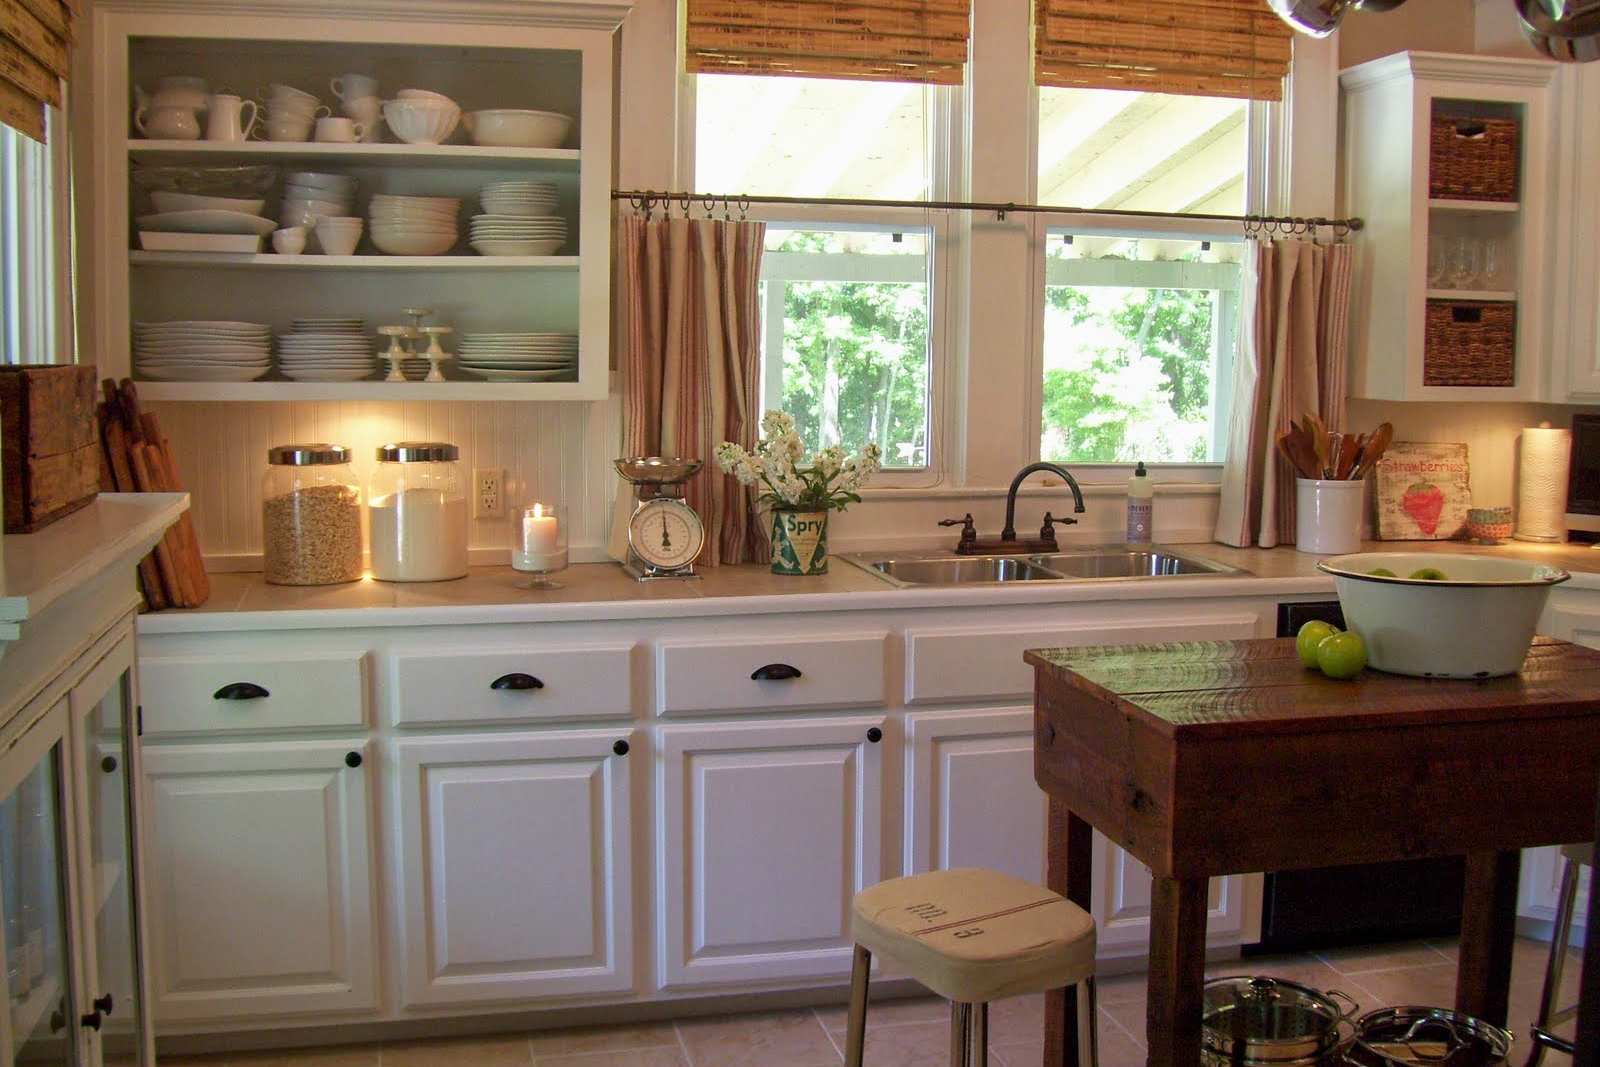 Remodel Kitchen Ideas On A Budget Remodeling A Kitchen  Do It Yourself Kitchen Remodel